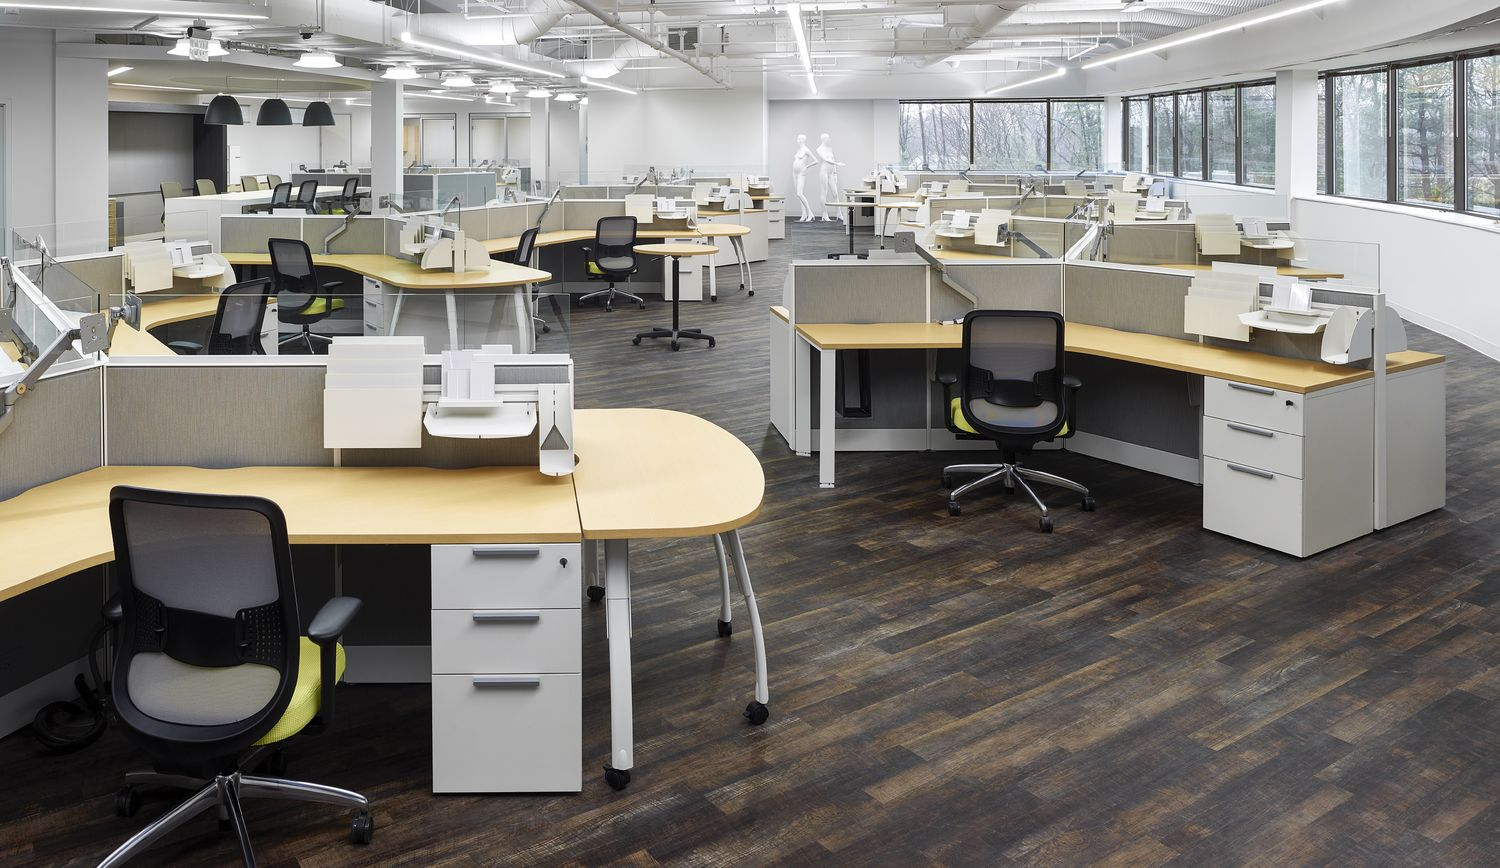 a230e47b0f22f The company's bright, fully refurbished corporate offices were designed to  cultivate creativity and collaboration